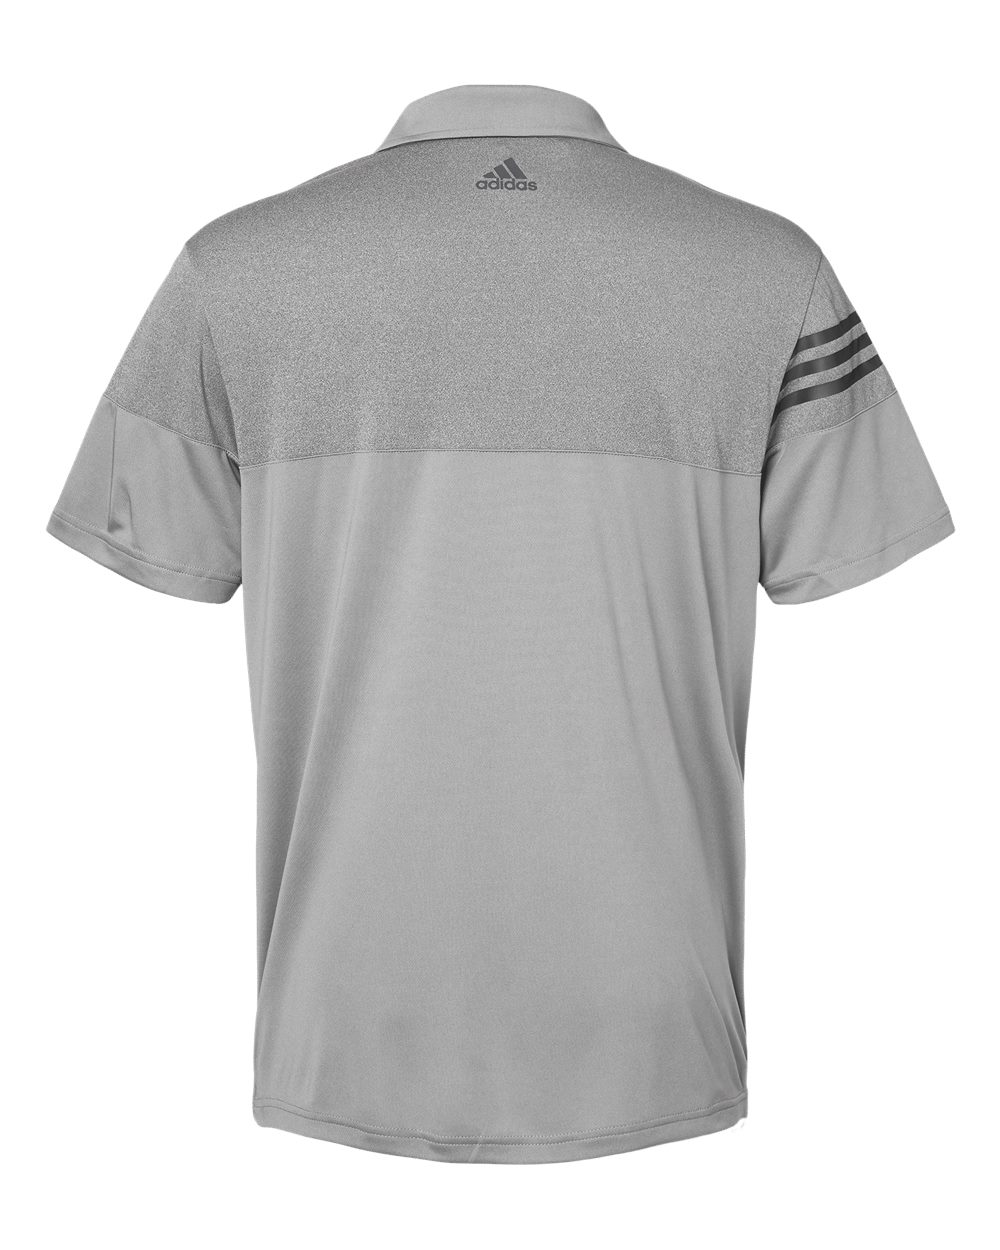 Adidas-Heather-3-Stripes-Block-Sport-Shirt-Polo-Button-A213-up-to-3XL thumbnail 22